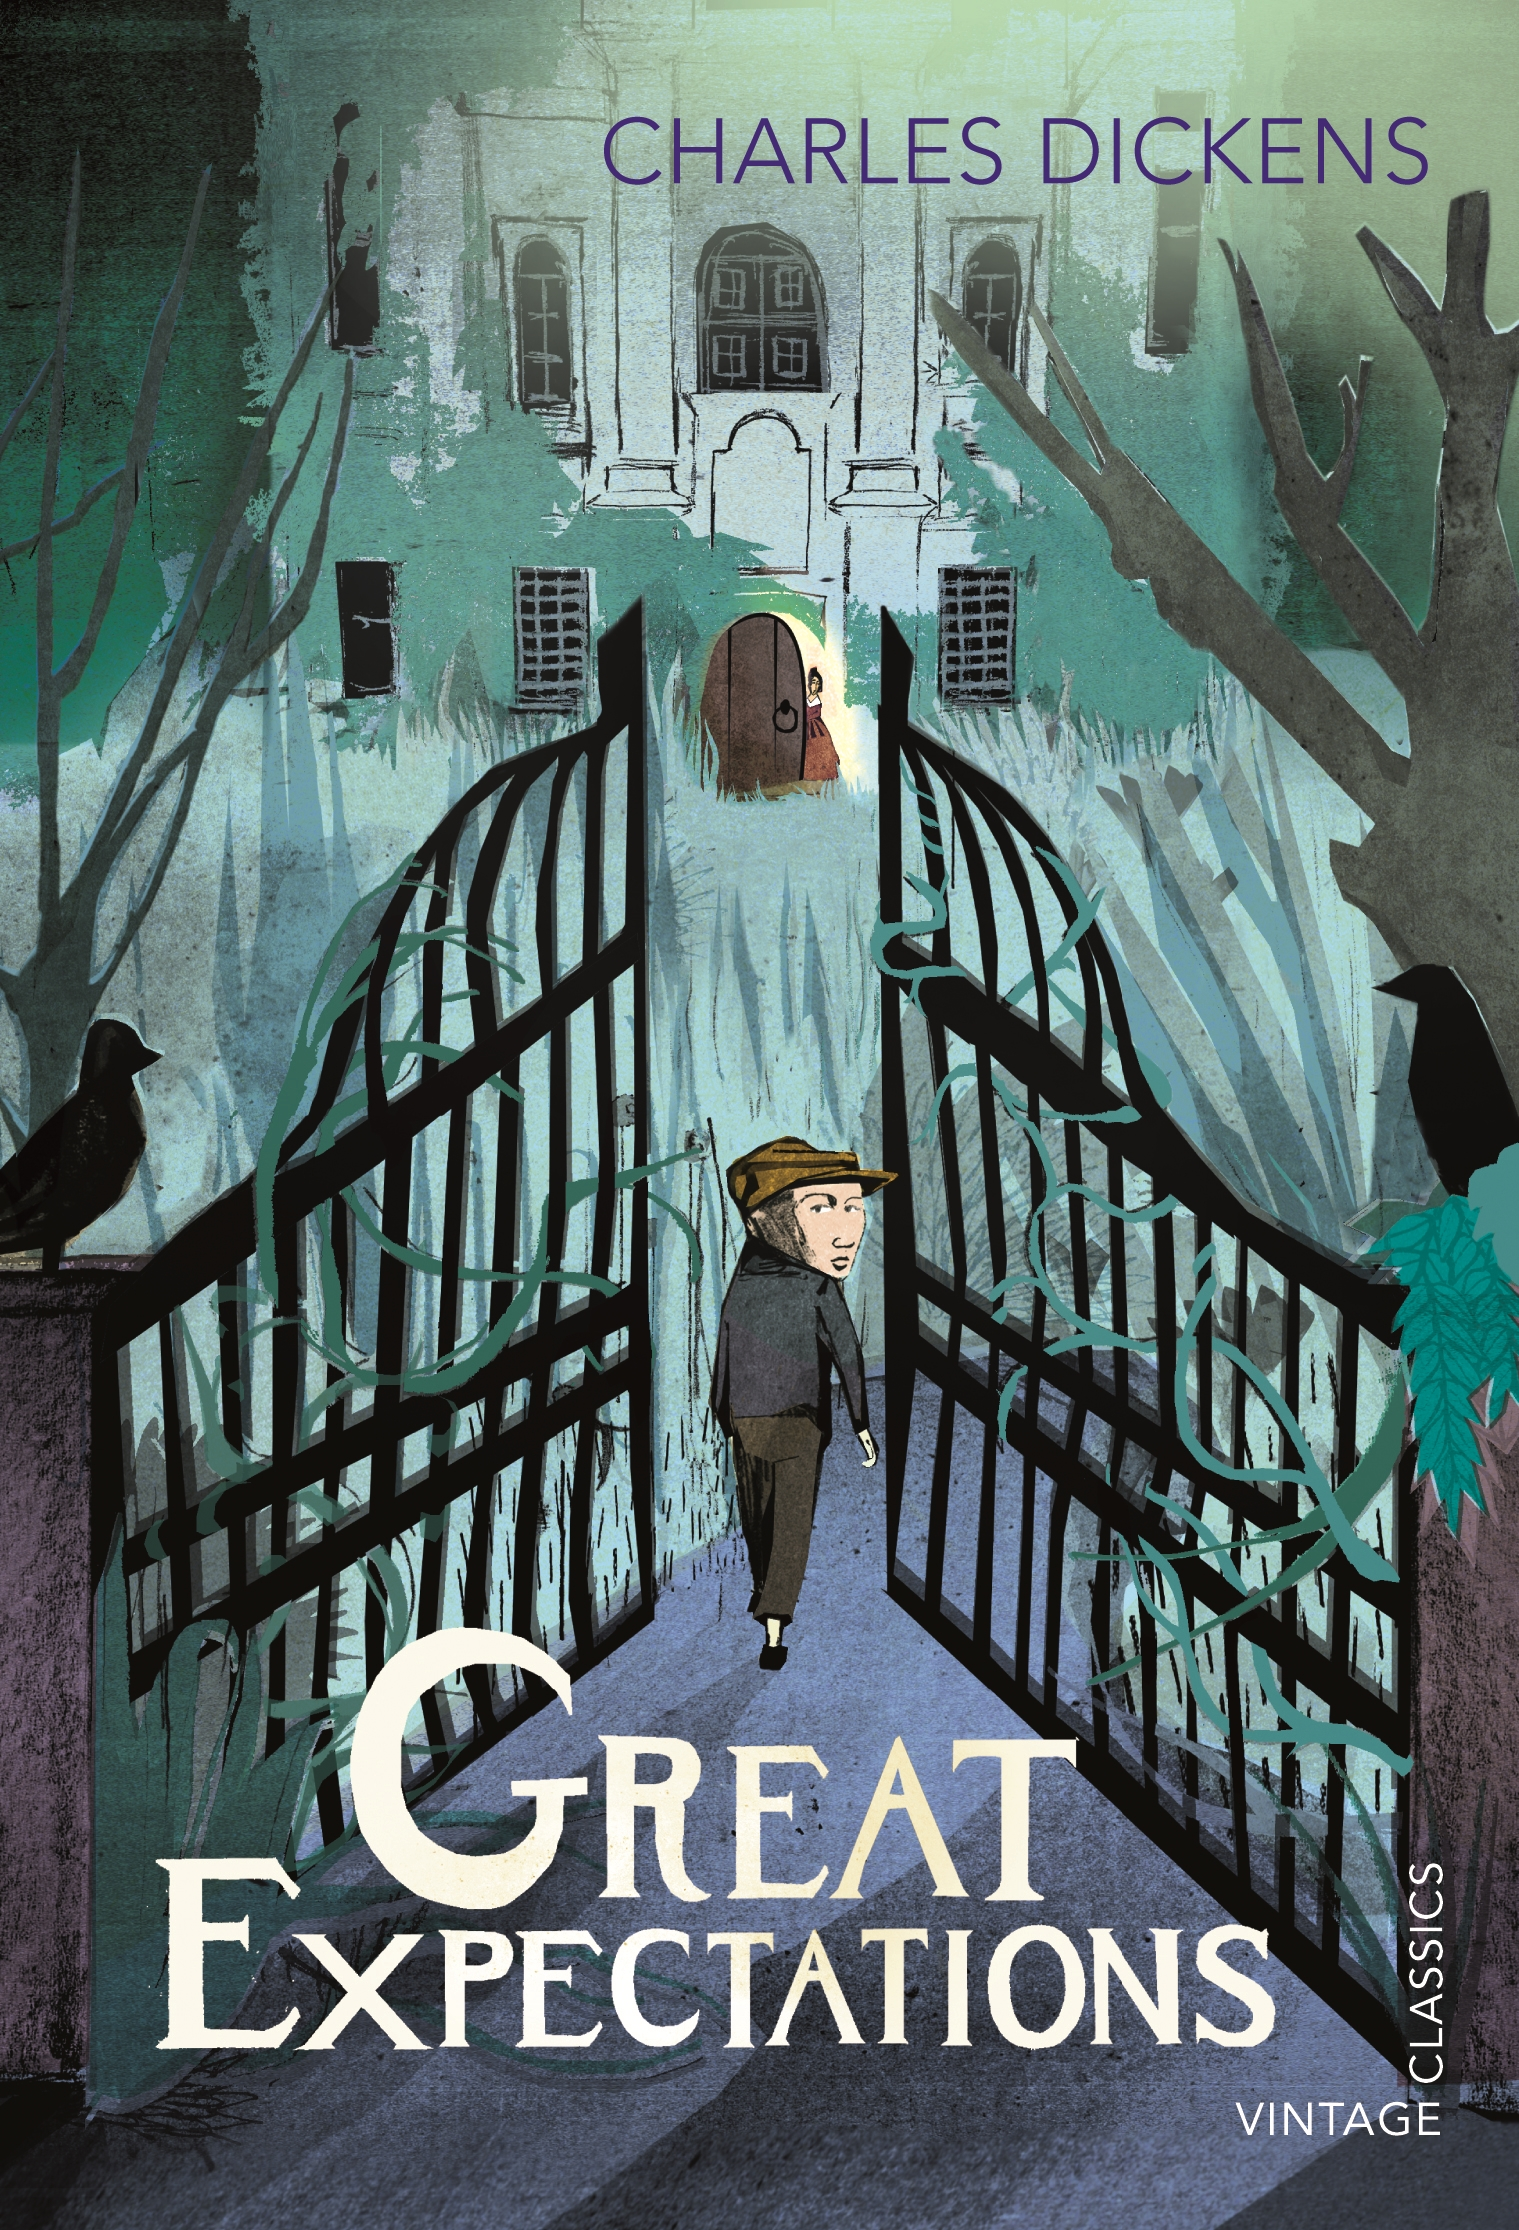 great expectations by charles dickens a Charles dickens remains one of the most prominent and certainly the most commercially successful literary artist of nineteenth century england.